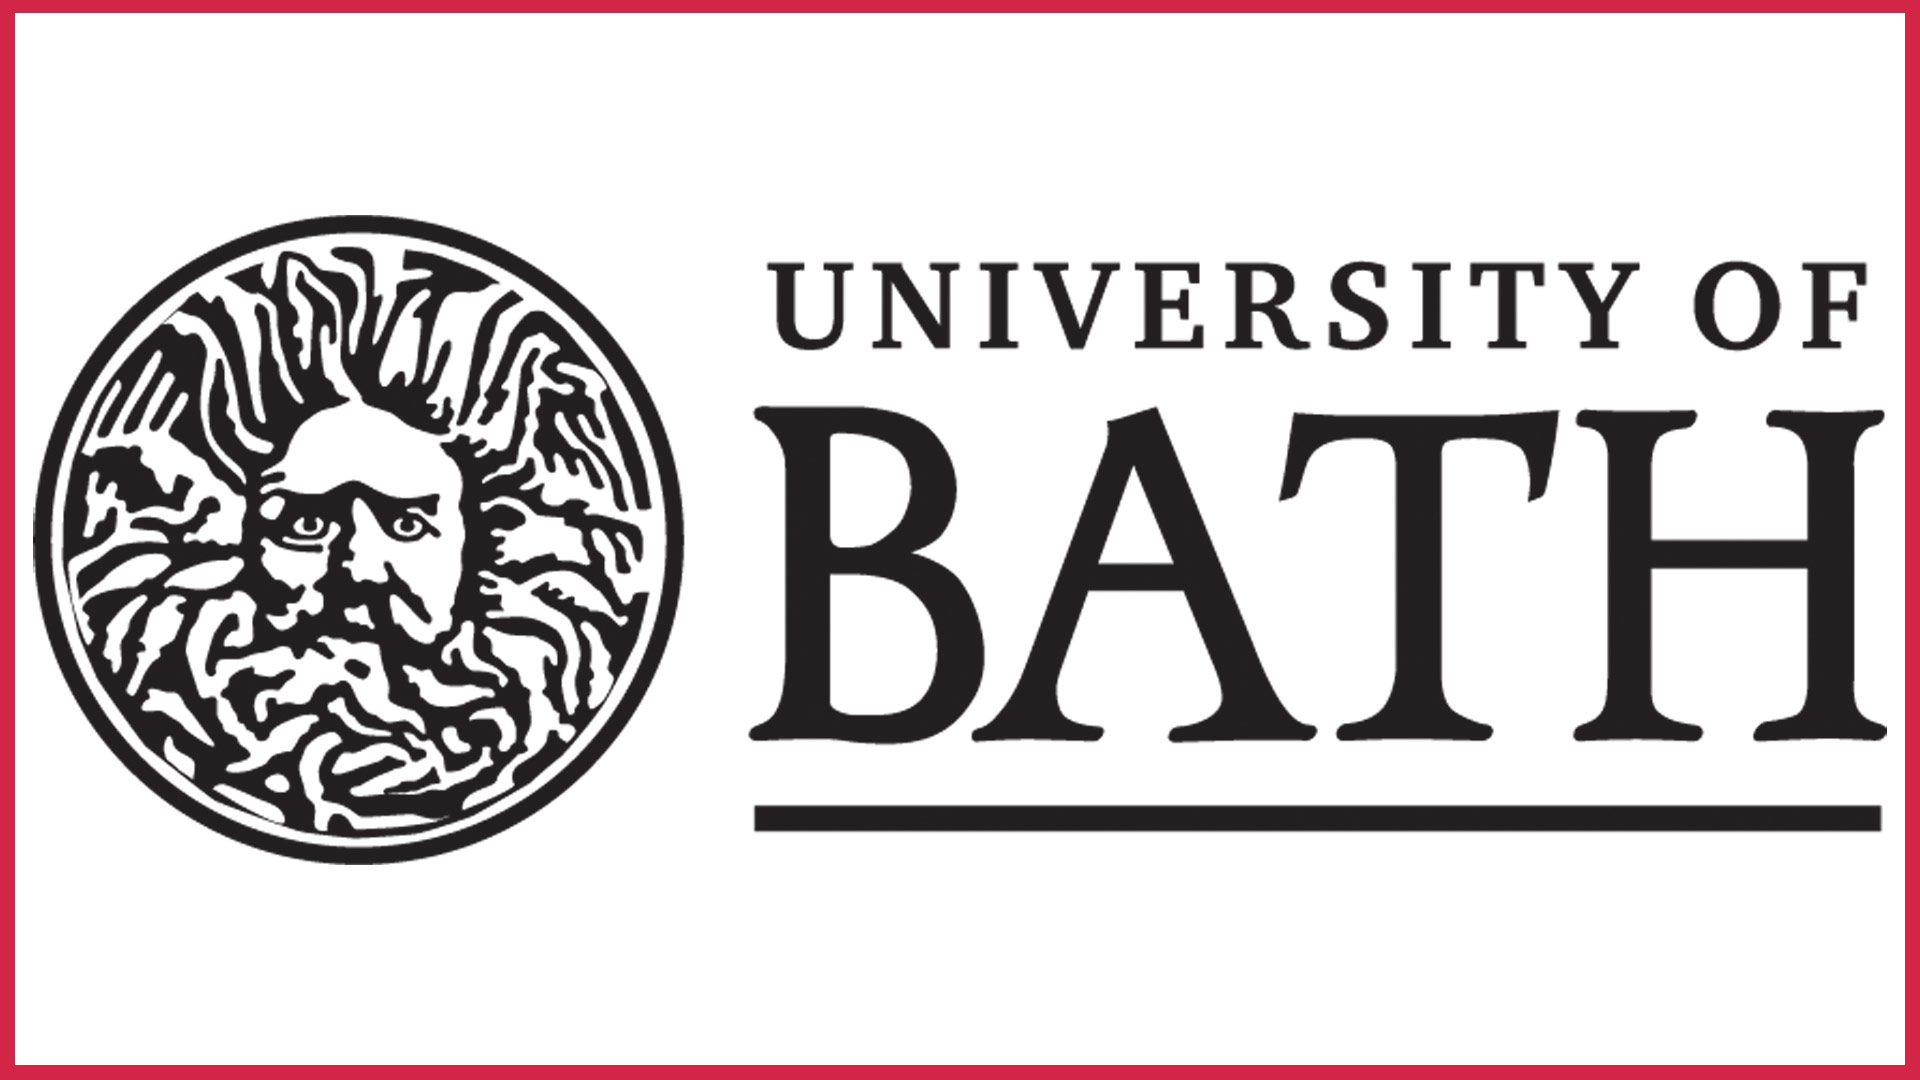 University-of-Bath-logo